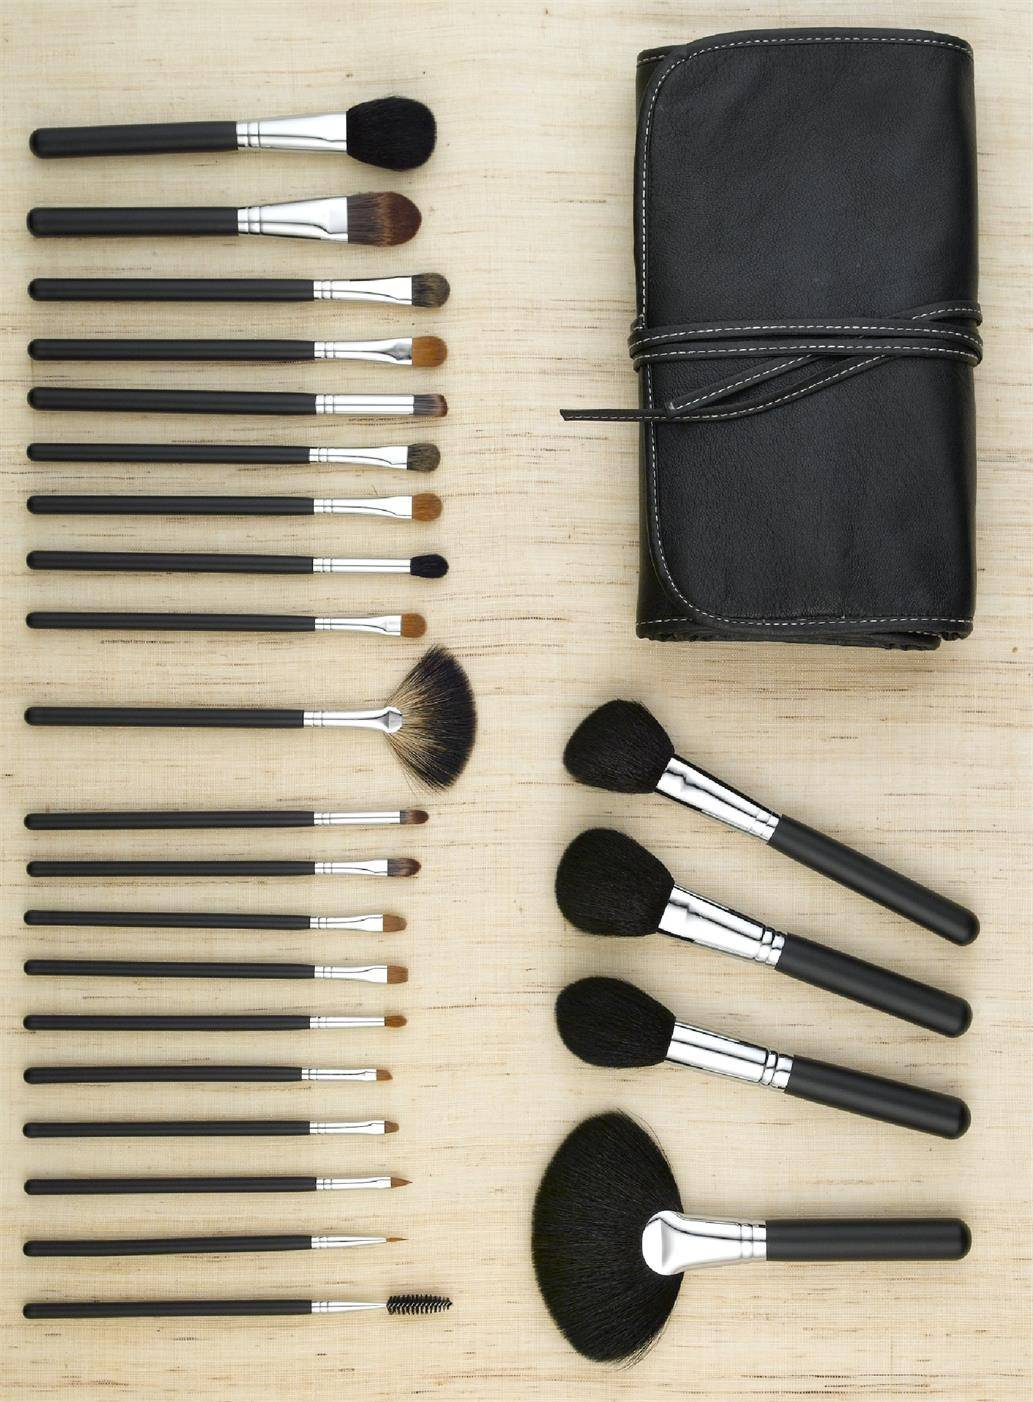 24pcs Professional Wood Makeup Brush Set Foundation Brushes Makeup Brushes